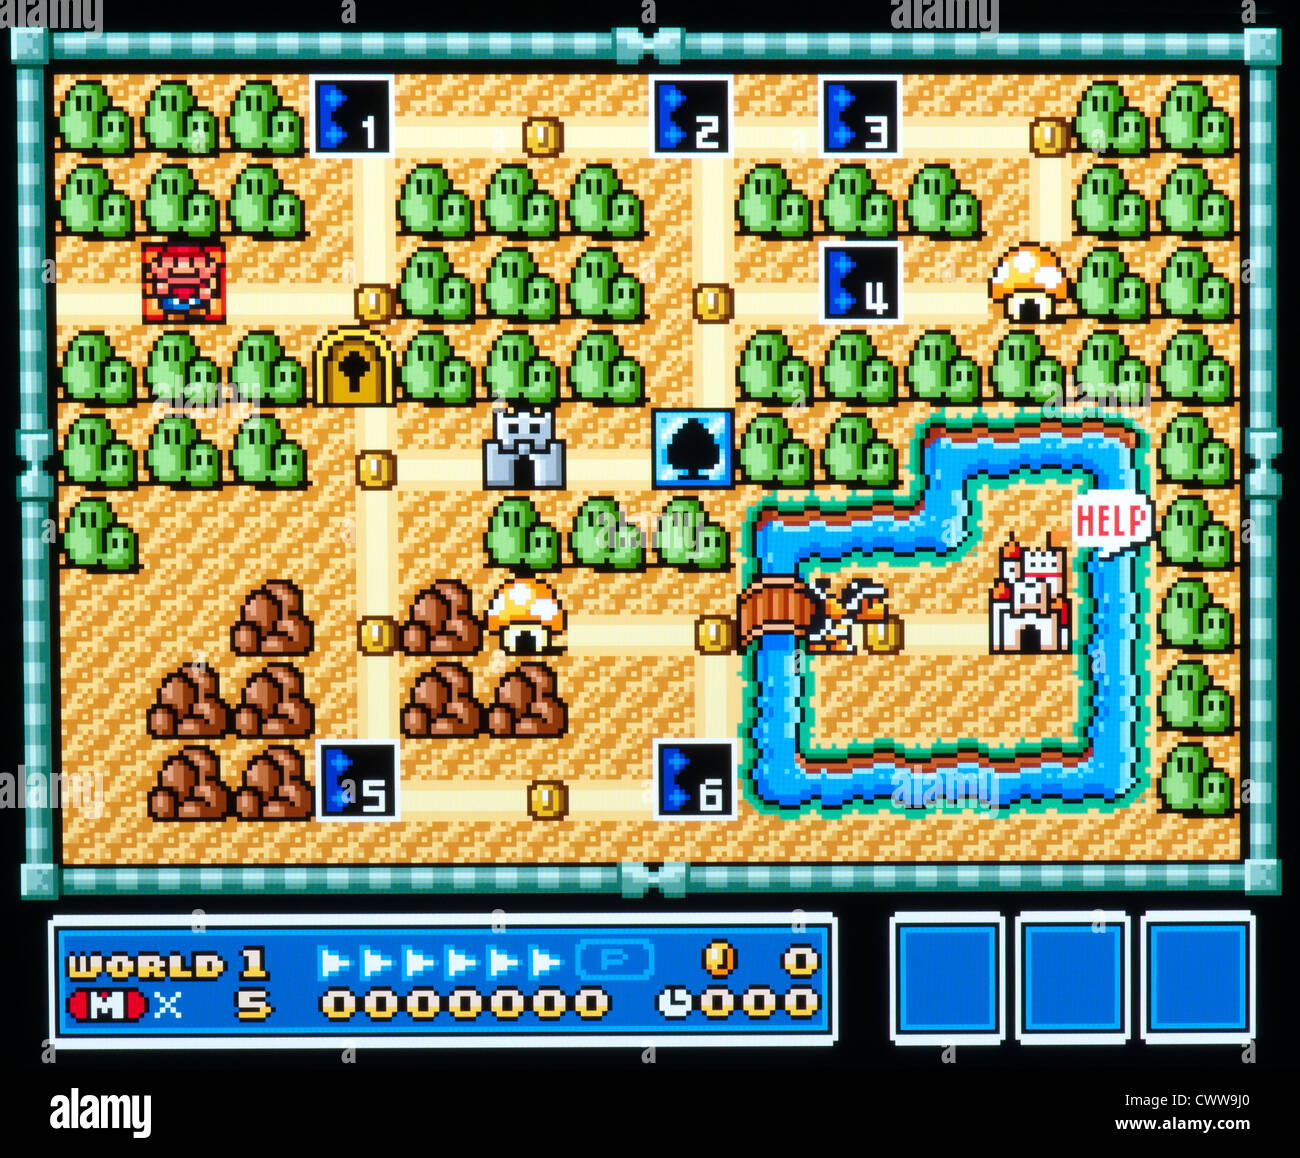 Super Mario bros video game - world 1 level map interface ... on map of moshi monsters, map of fire emblem, map of oregon trail, map of kingdom hearts, map of sports, map of pokemon, map of sesame street, map of luigi's mansion, map of angry birds, map of baseball, map of hello kitty,